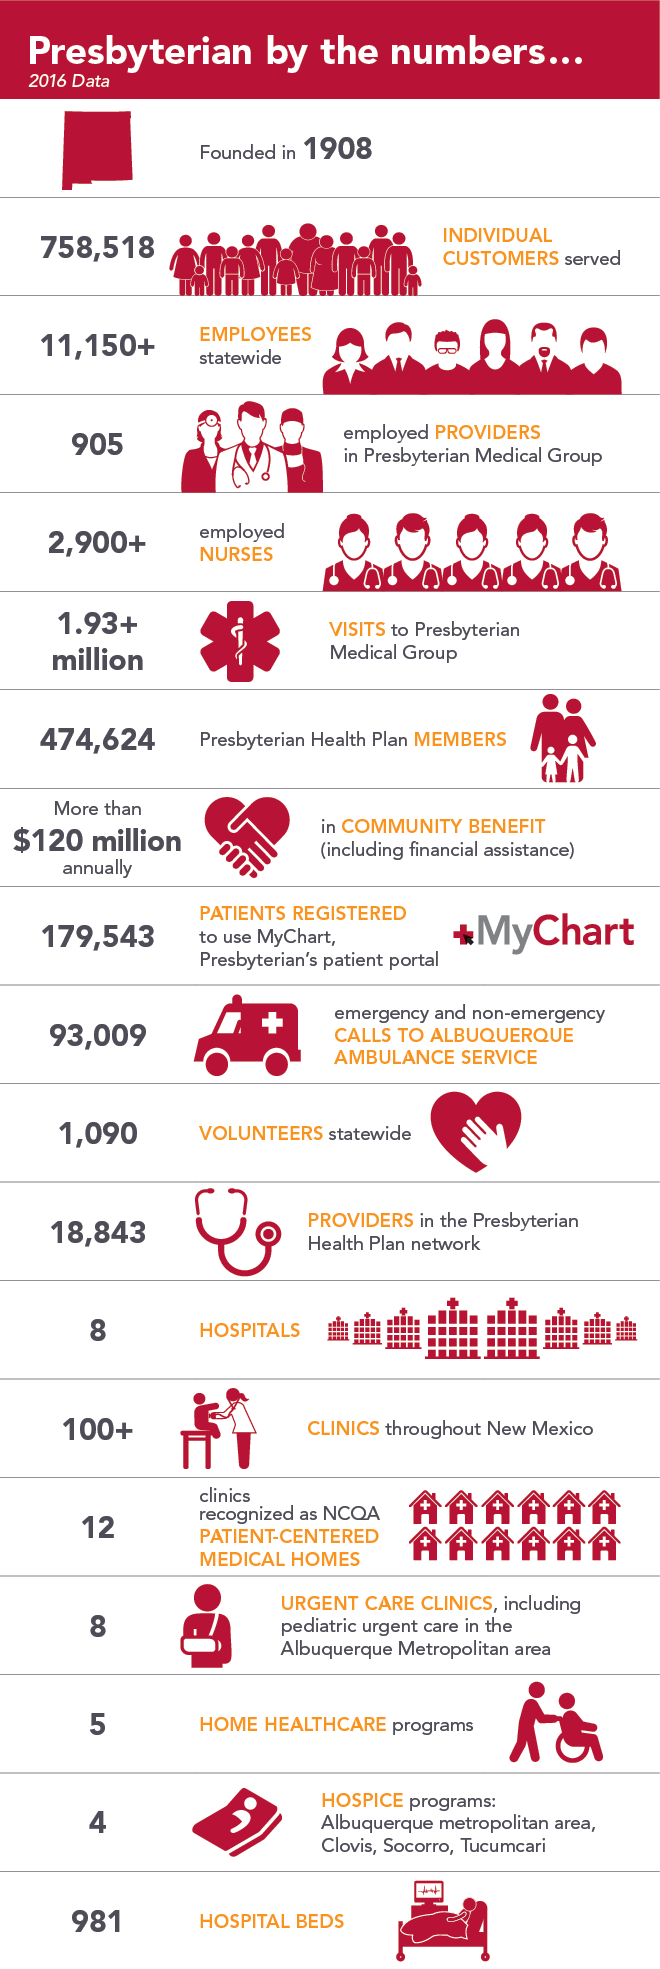 Presbyterian by the numbers... 2016 Data